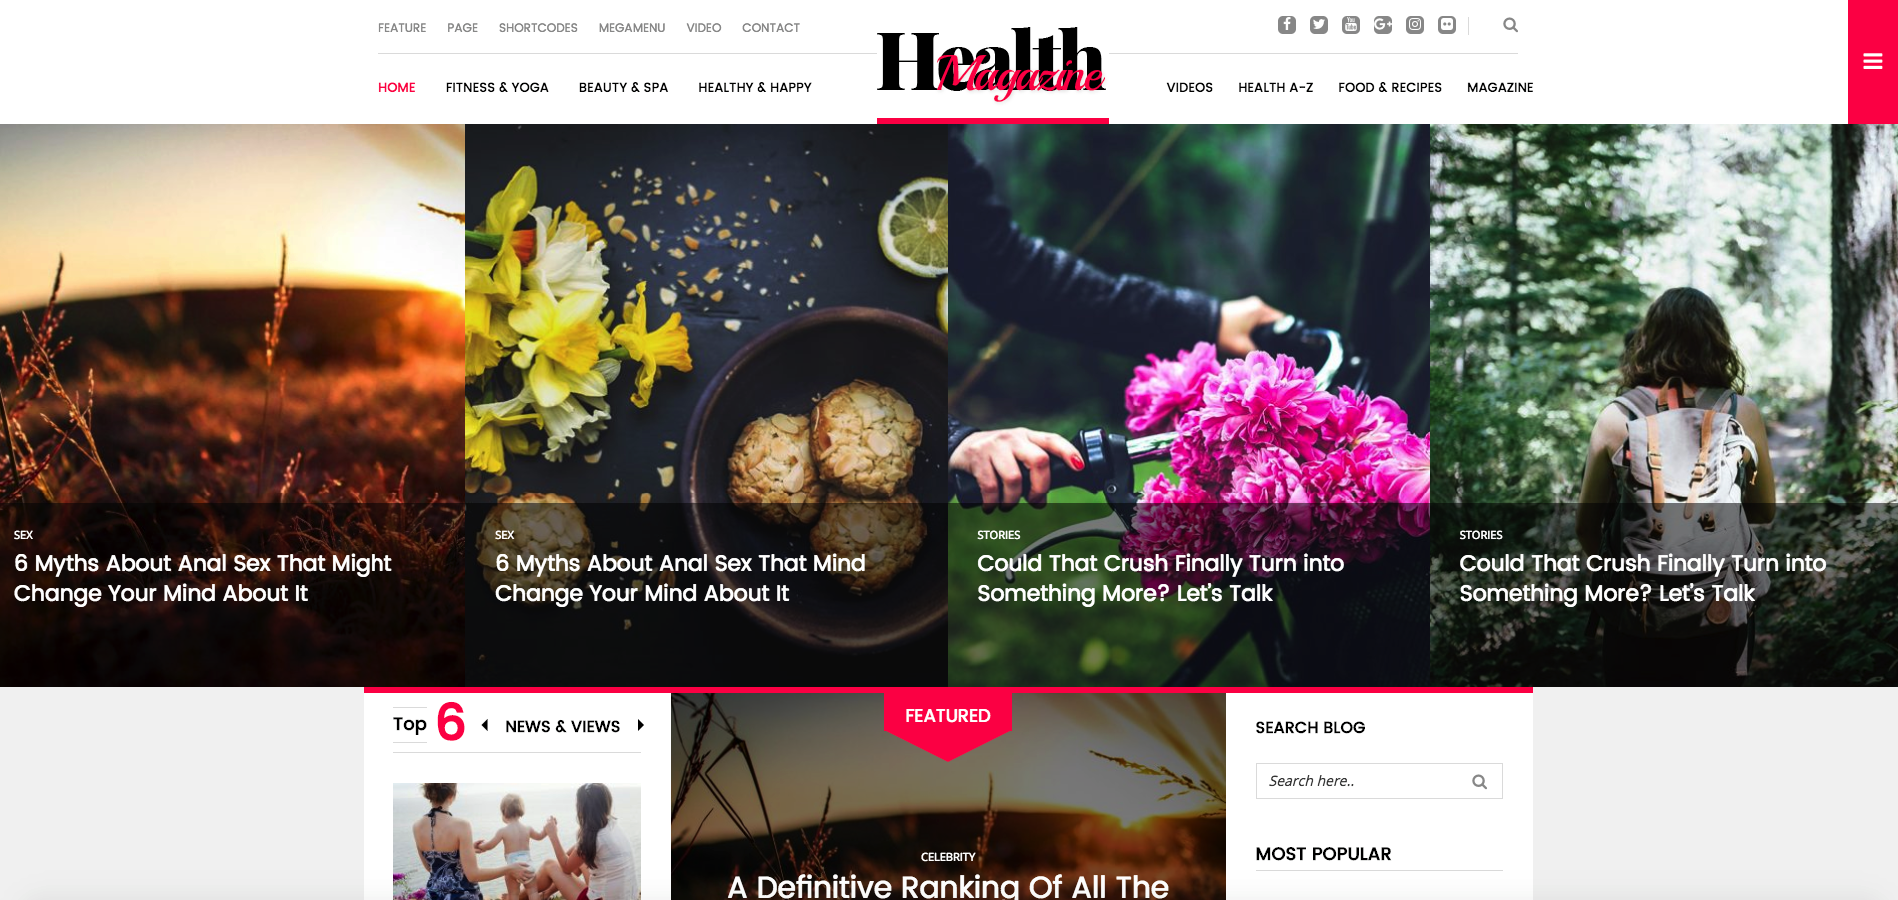 HealthMag – Multipurpose News/Magazine WordPress Theme